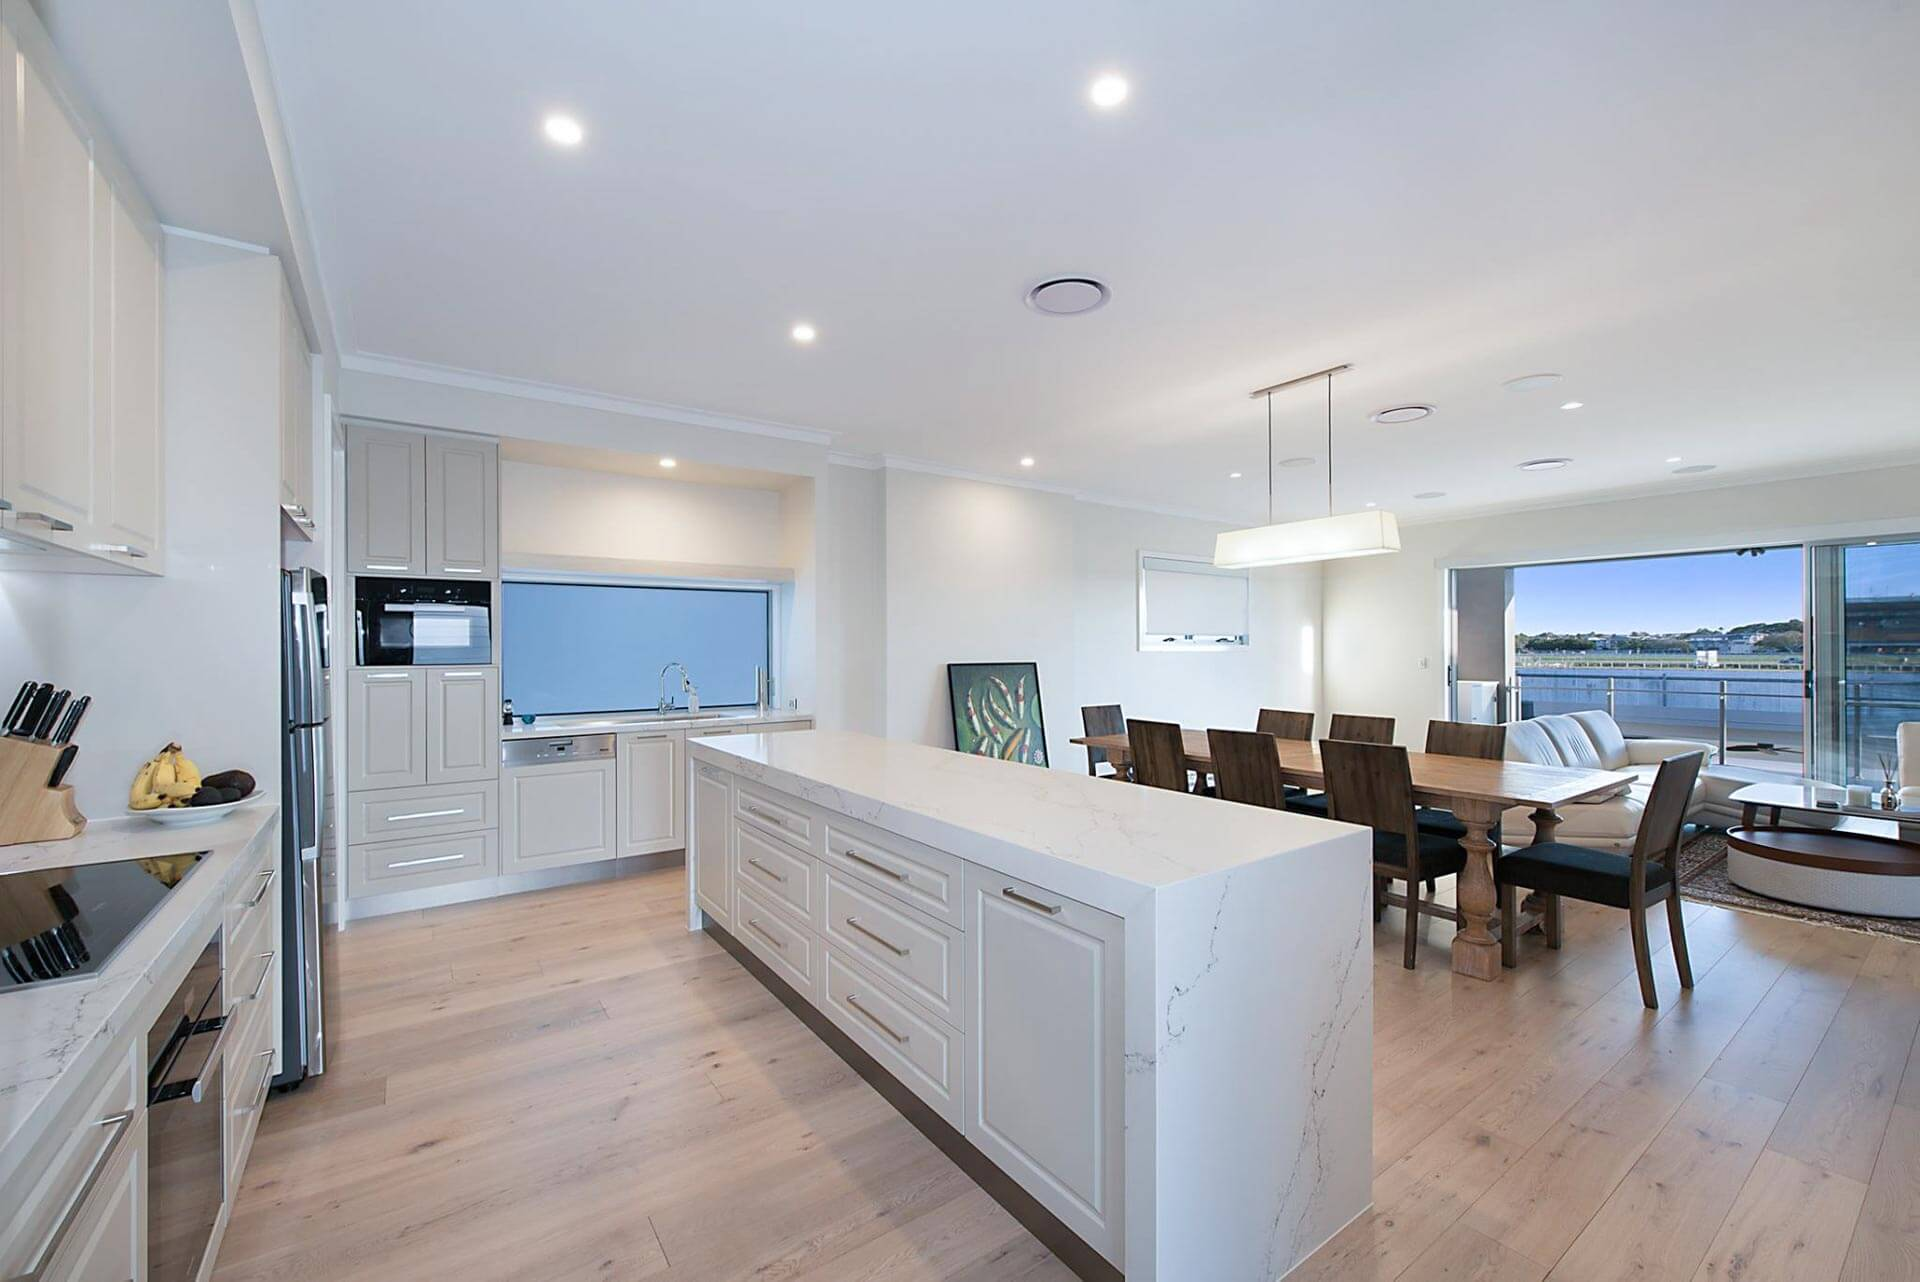 Small Kitchen Renovations Brisbane, Gold Coast Queensland